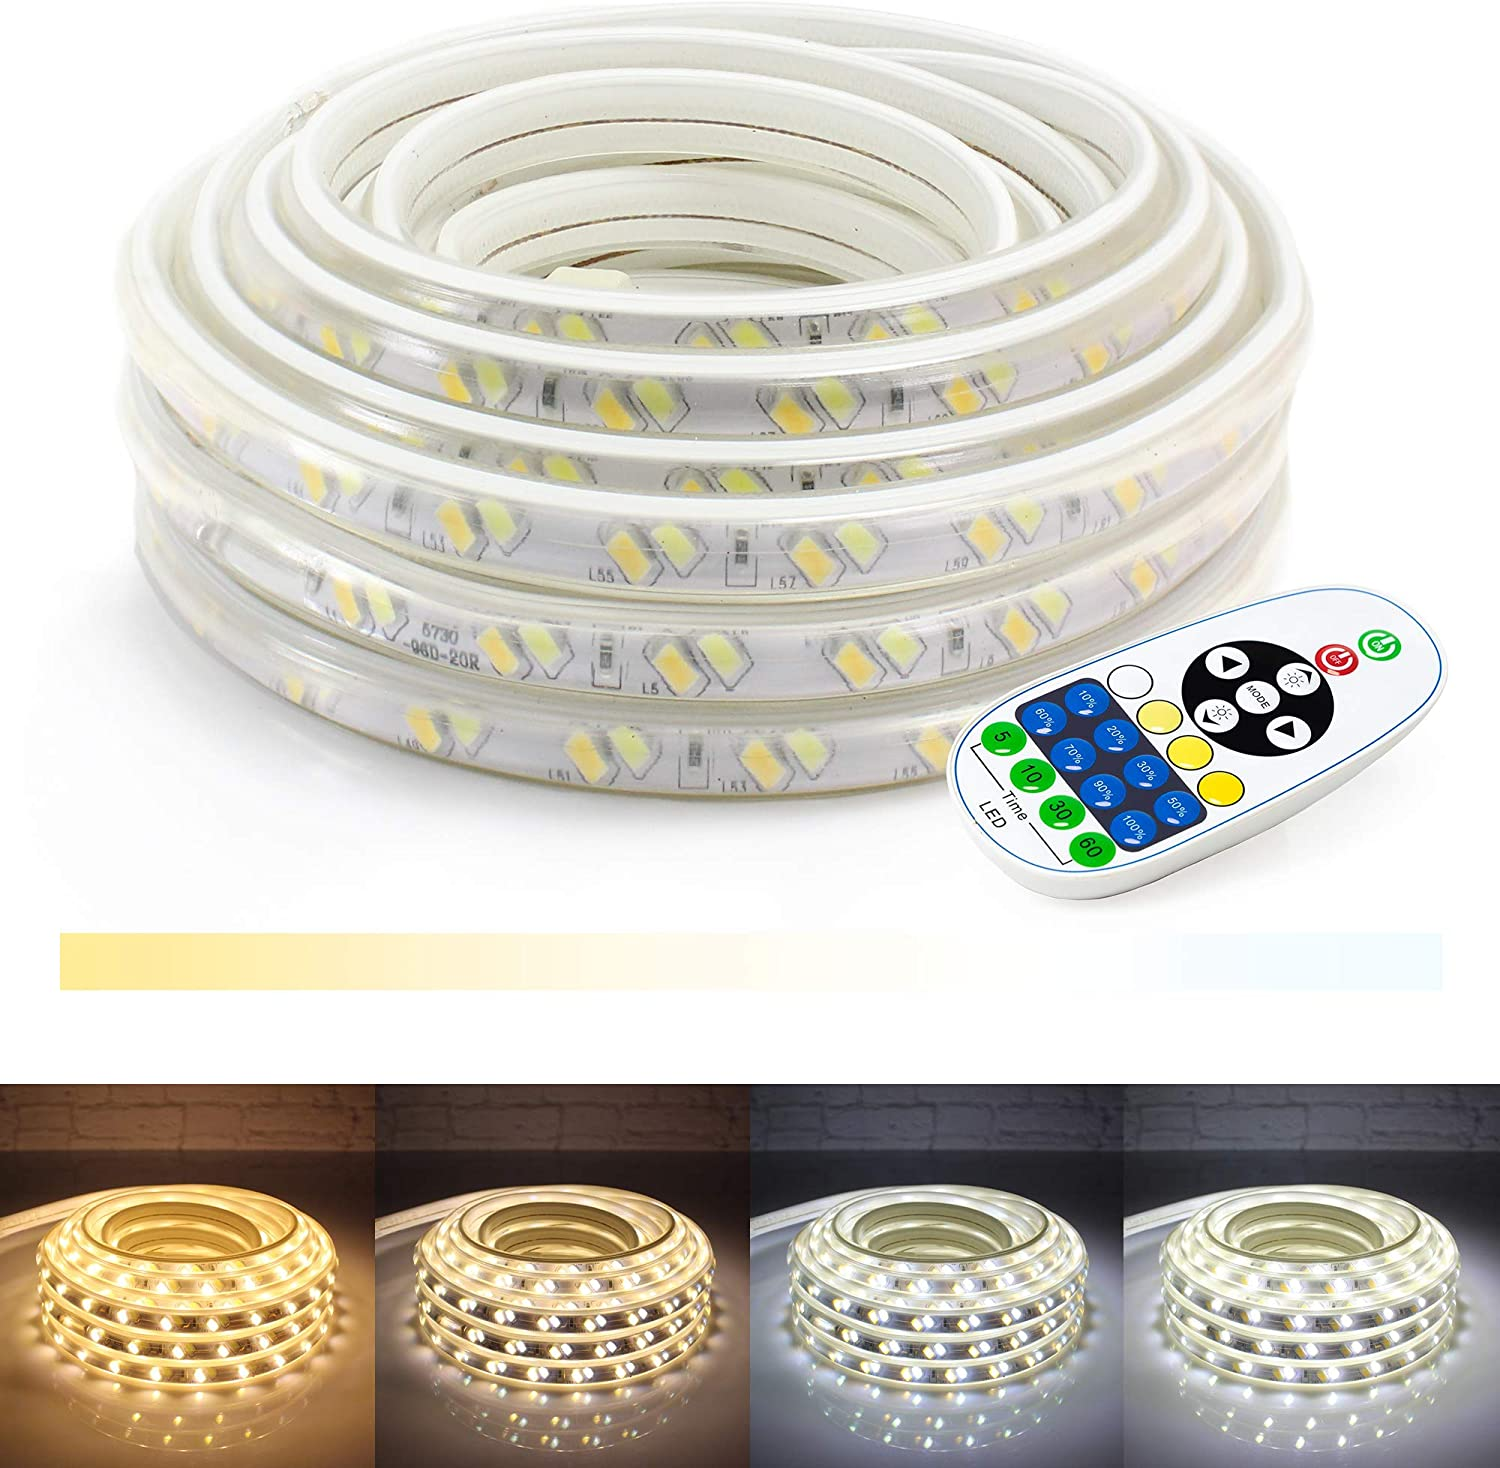 WYZworks LED Strip Free shipping New Lights 25 2-in-1 White Popular product ft Cool Warm